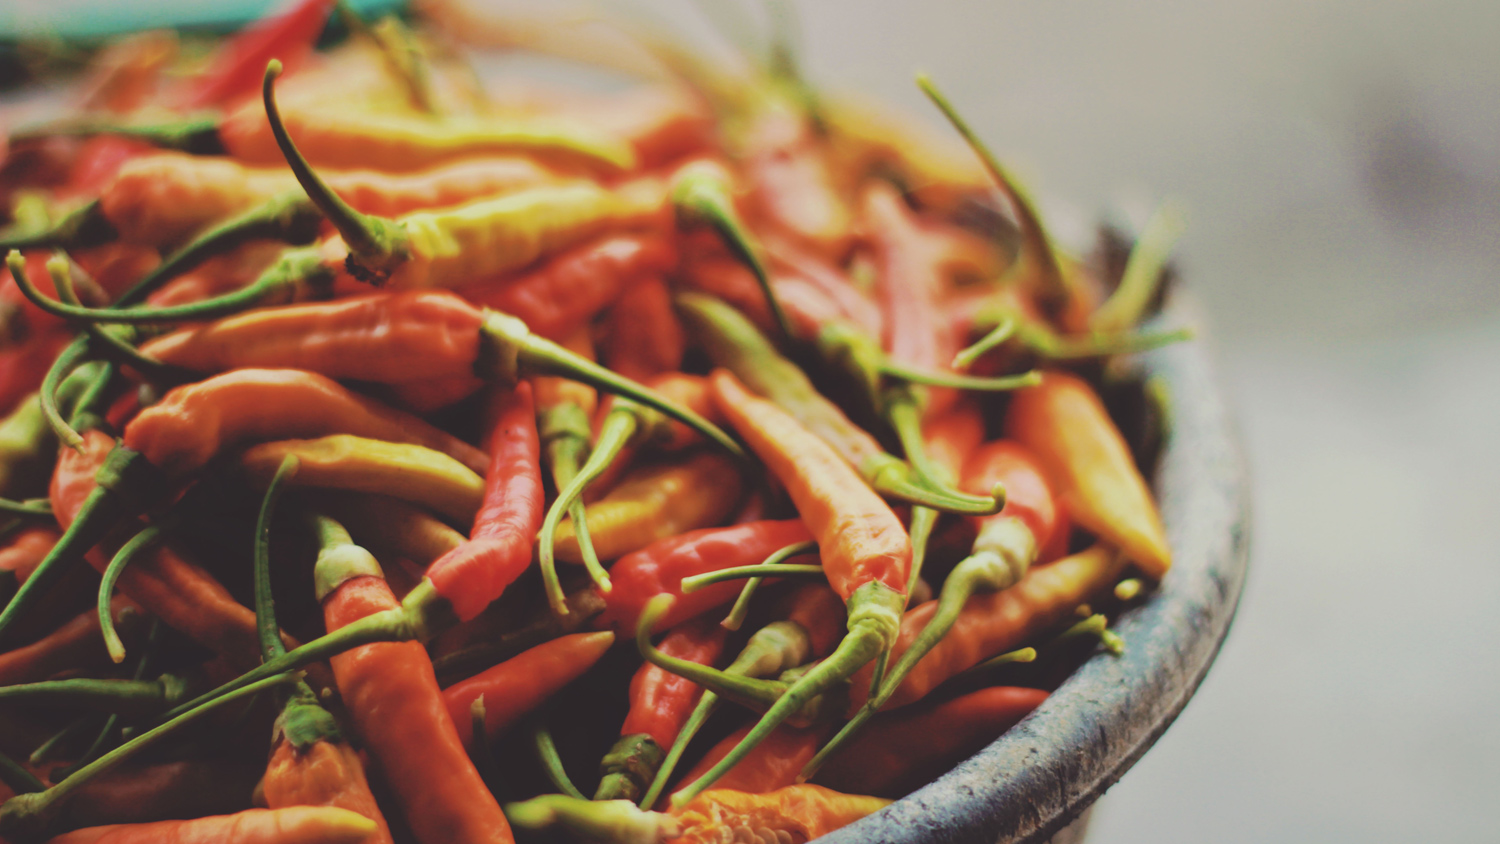 la-coutch-blog-lifestyle-food-le-guide-ultime-pour-sinitier-a-lapero-piment2